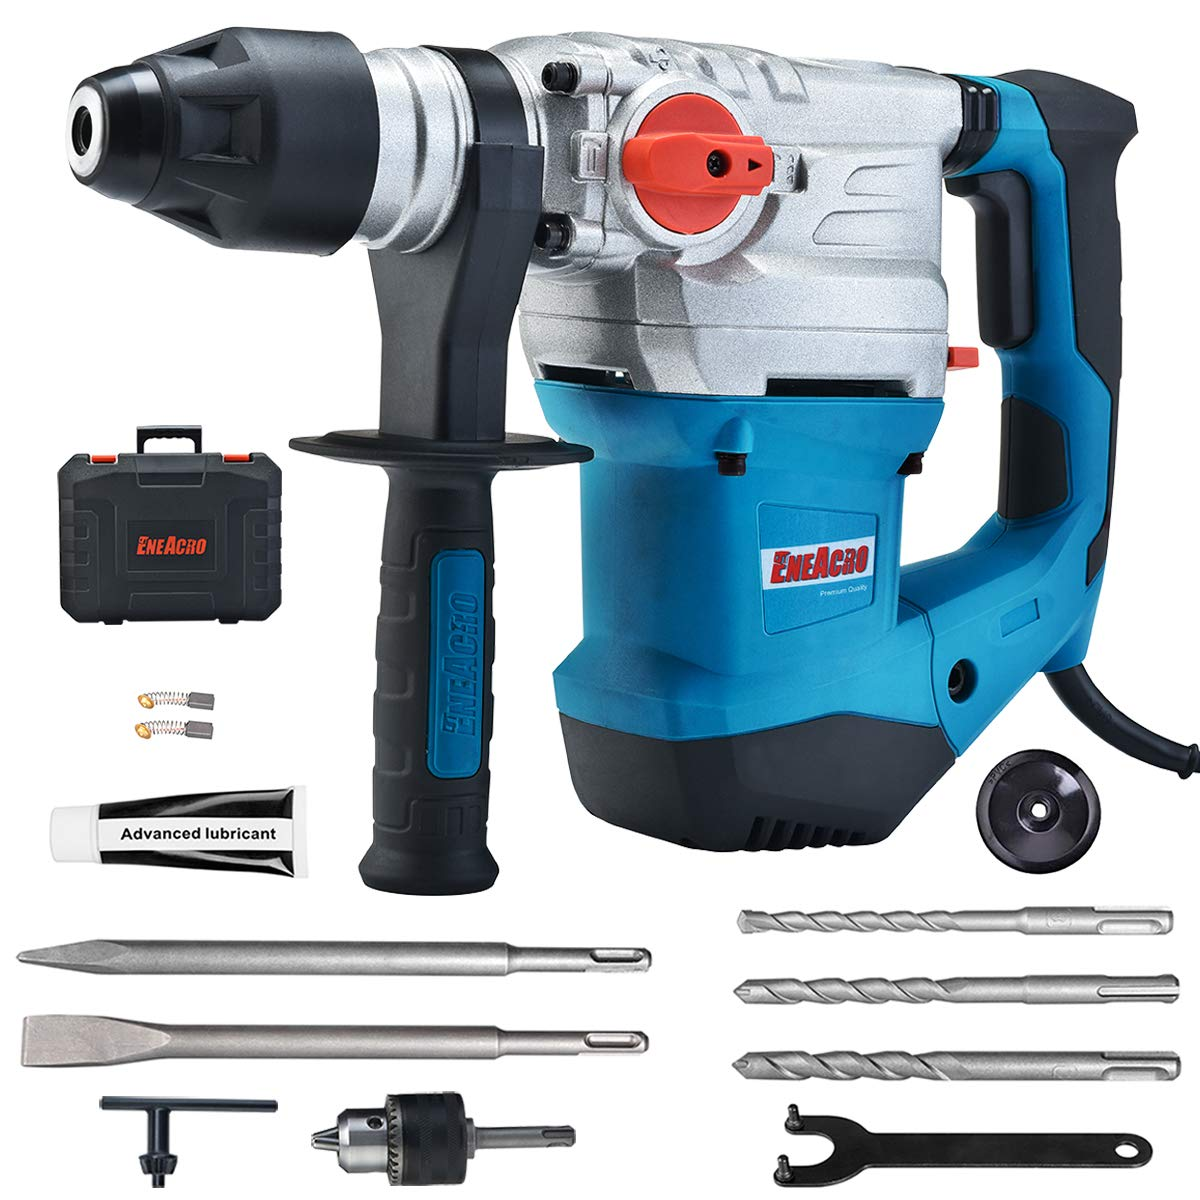 ENEACRO 1-1/4 Inch SDS-Plus 12 Amp Heavy Duty Rotary Hammer Drill, Safety Clutch 4 Functions with Vibration Control Including Grease, Chisels and Drill Chuck with Case